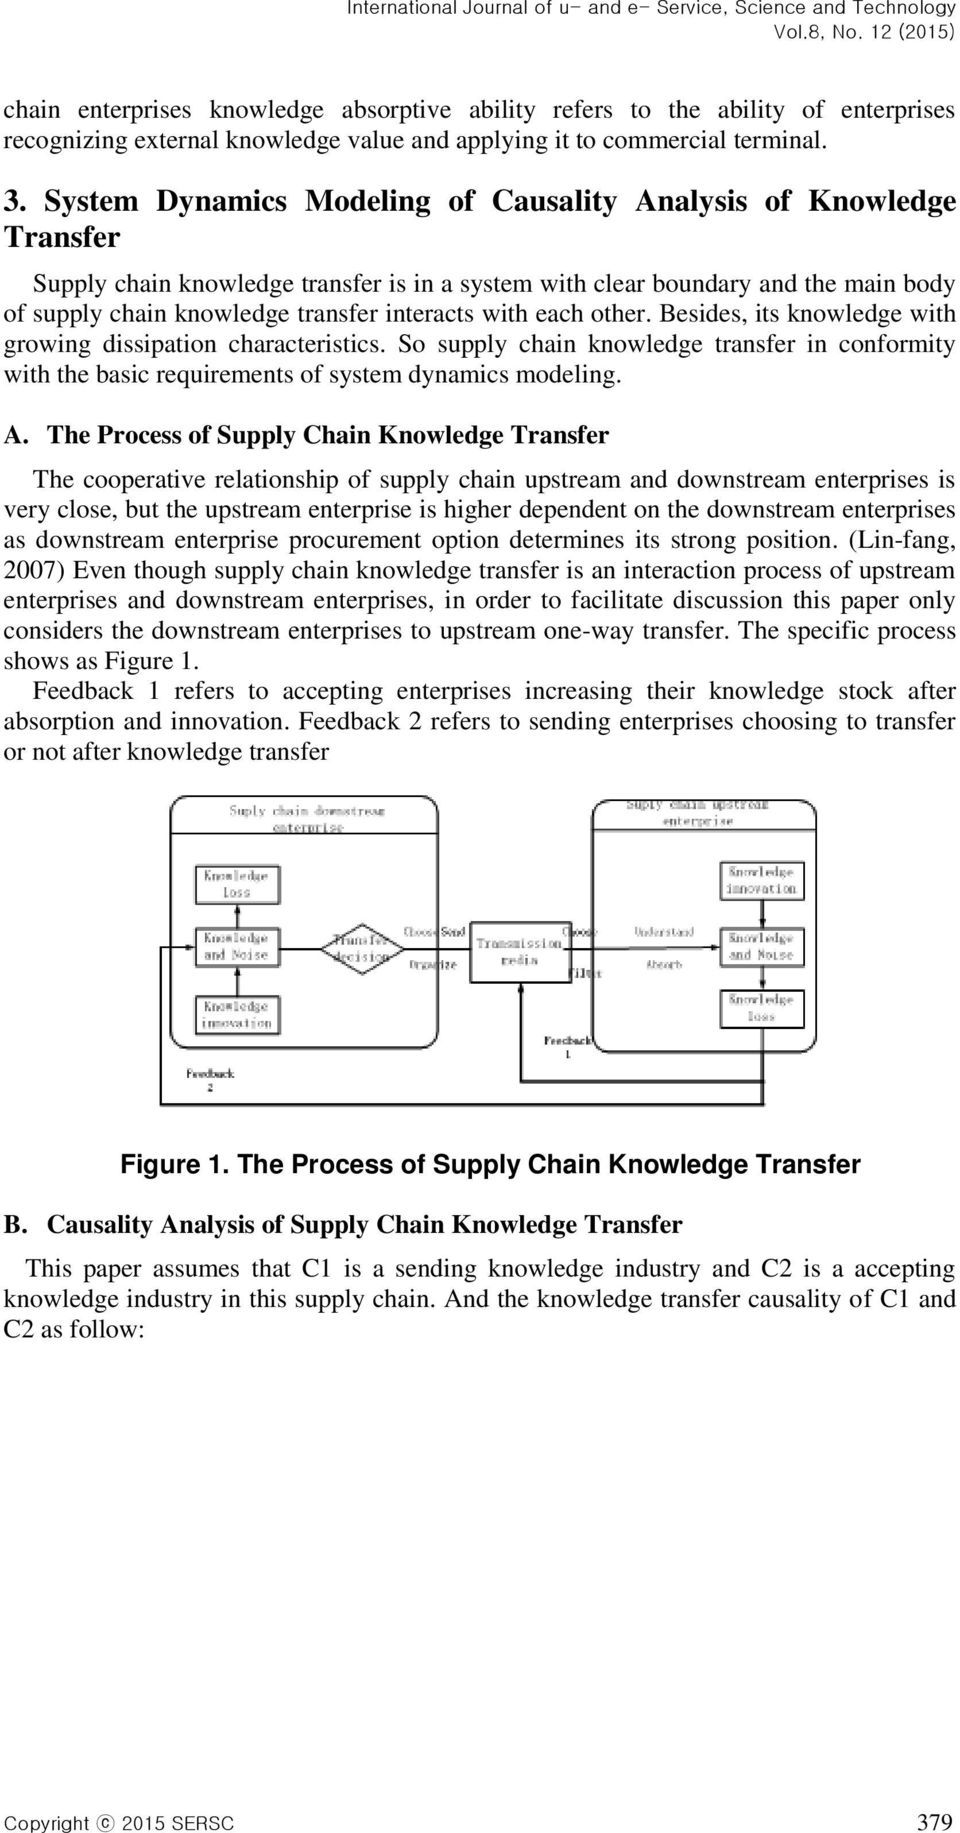 with each other. Besides, its knowledge with growing dissipation characteristics. So supply chain knowledge transfer in conformity with the basic requirements of system dynamics modeling. A.